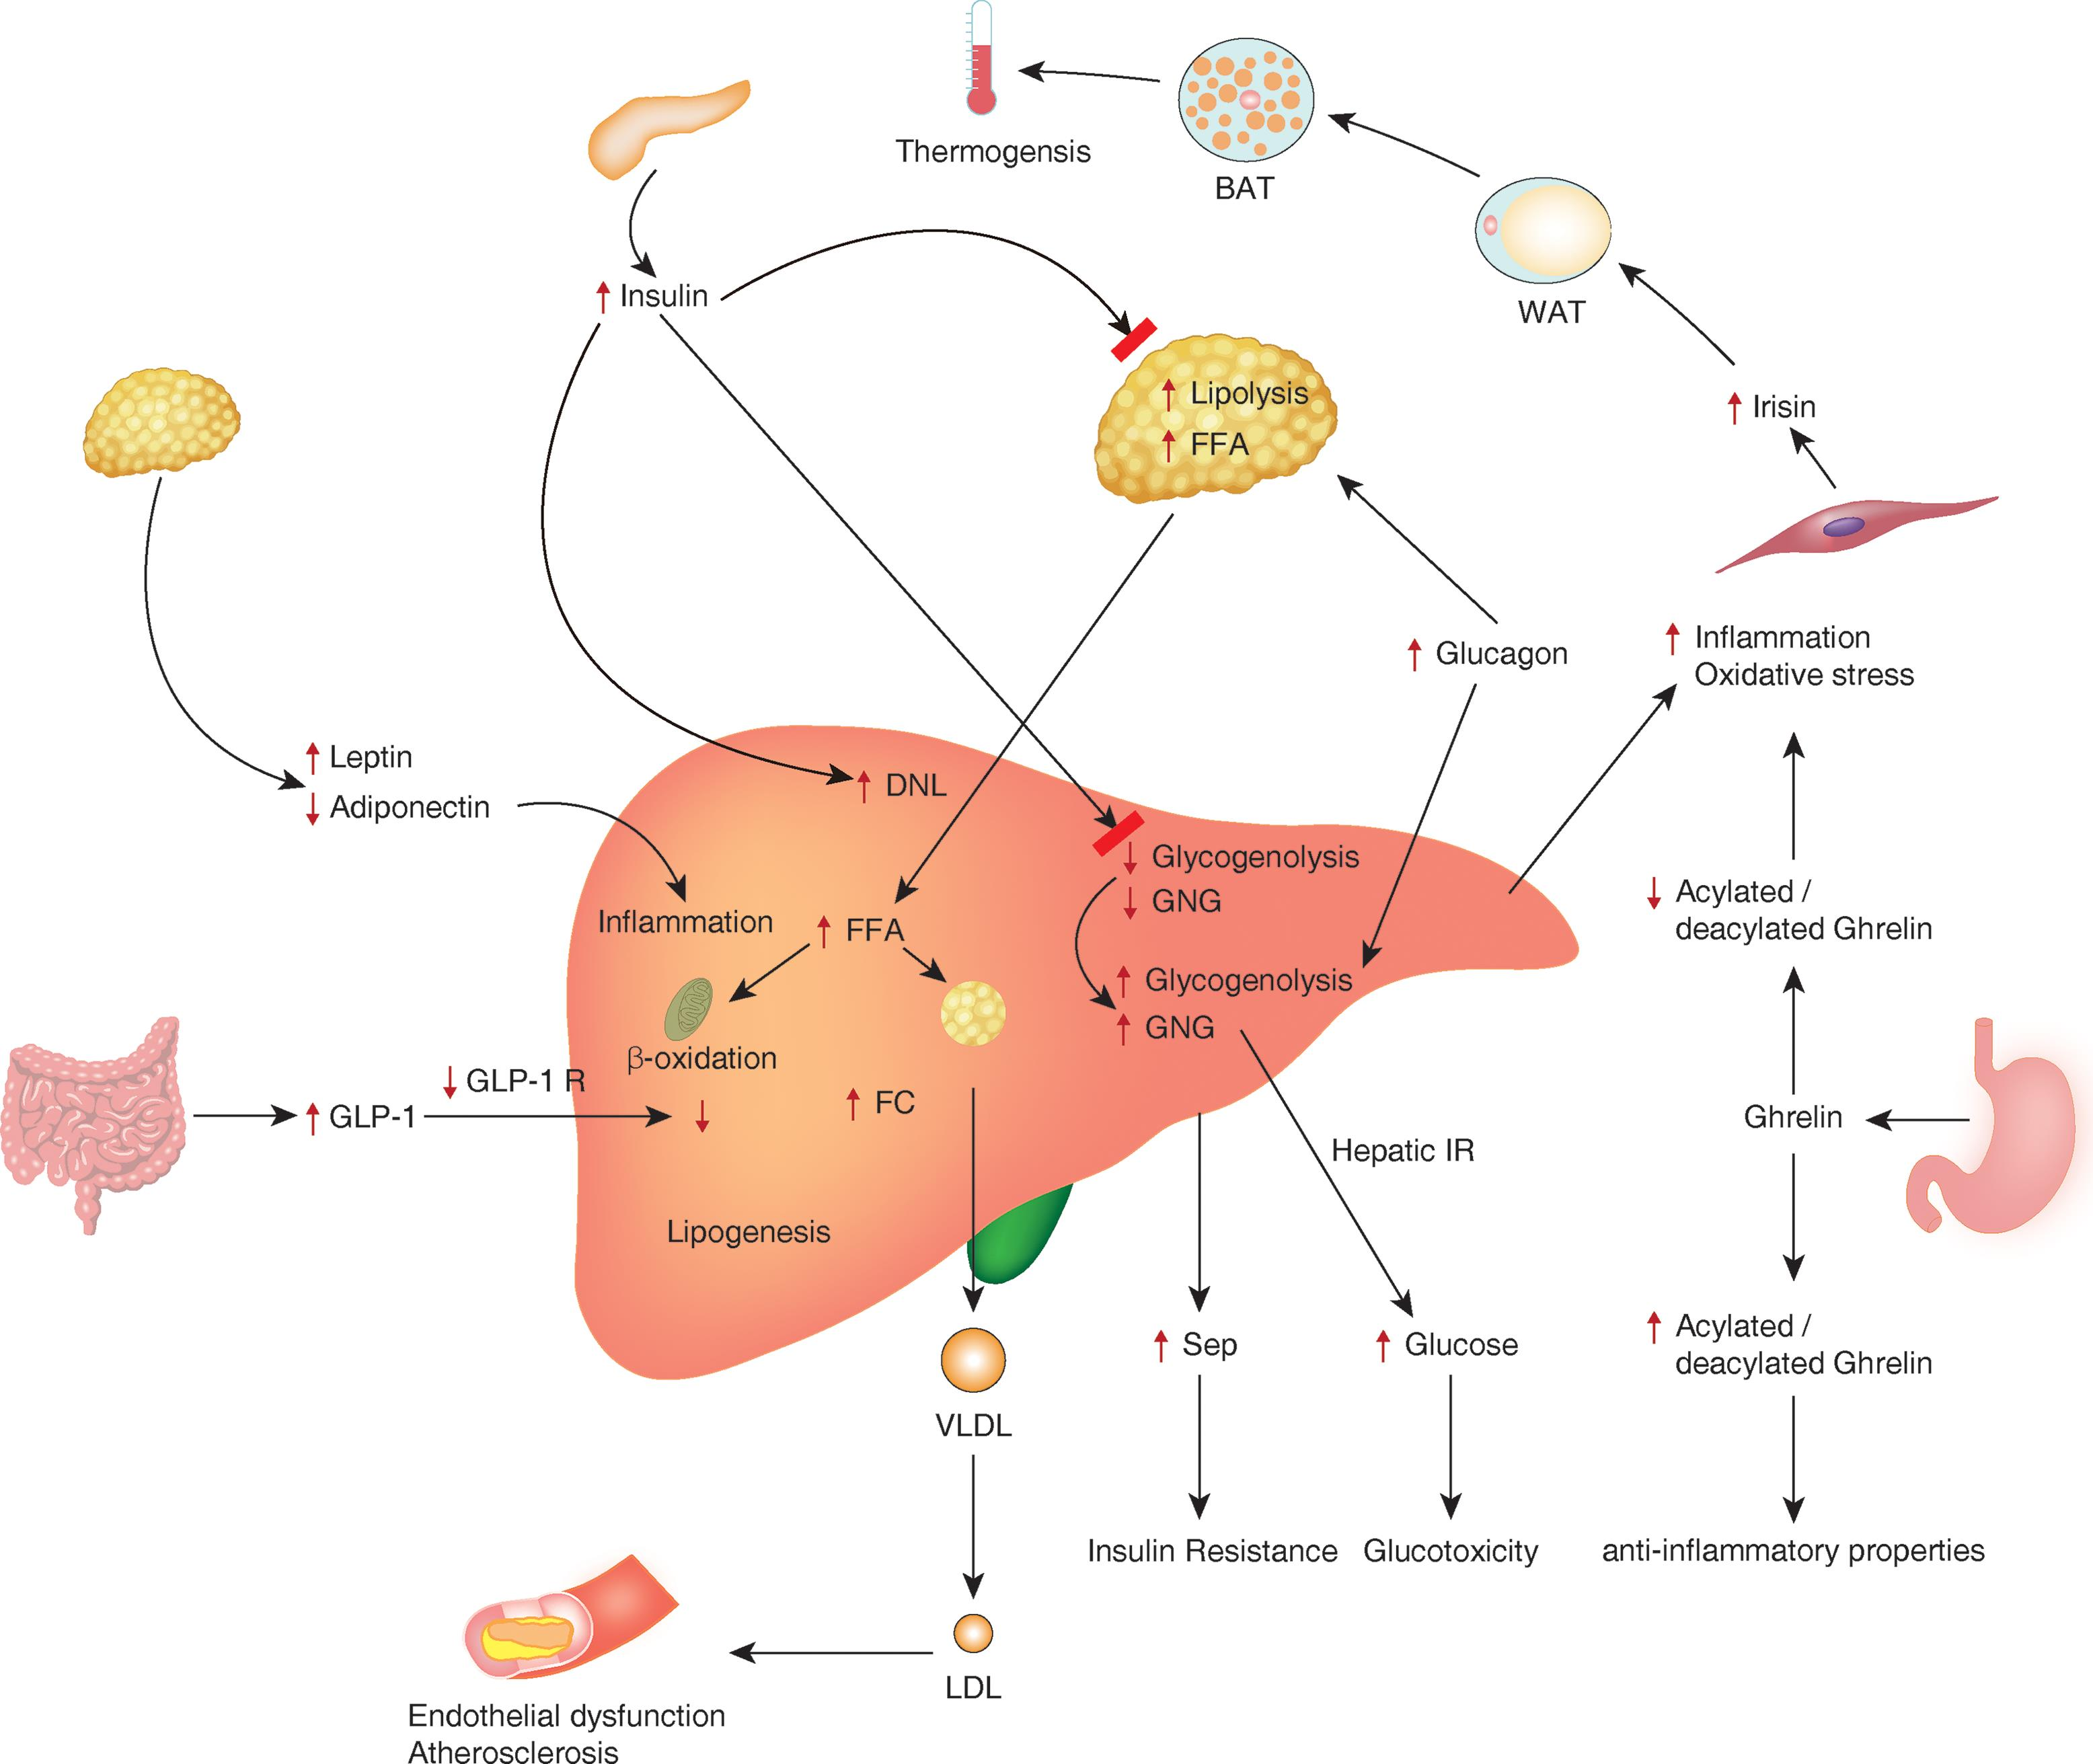 Pathophysiological mechanisms involved in the development and complications of nonalcoholic fatty liver disease (NAFLD).